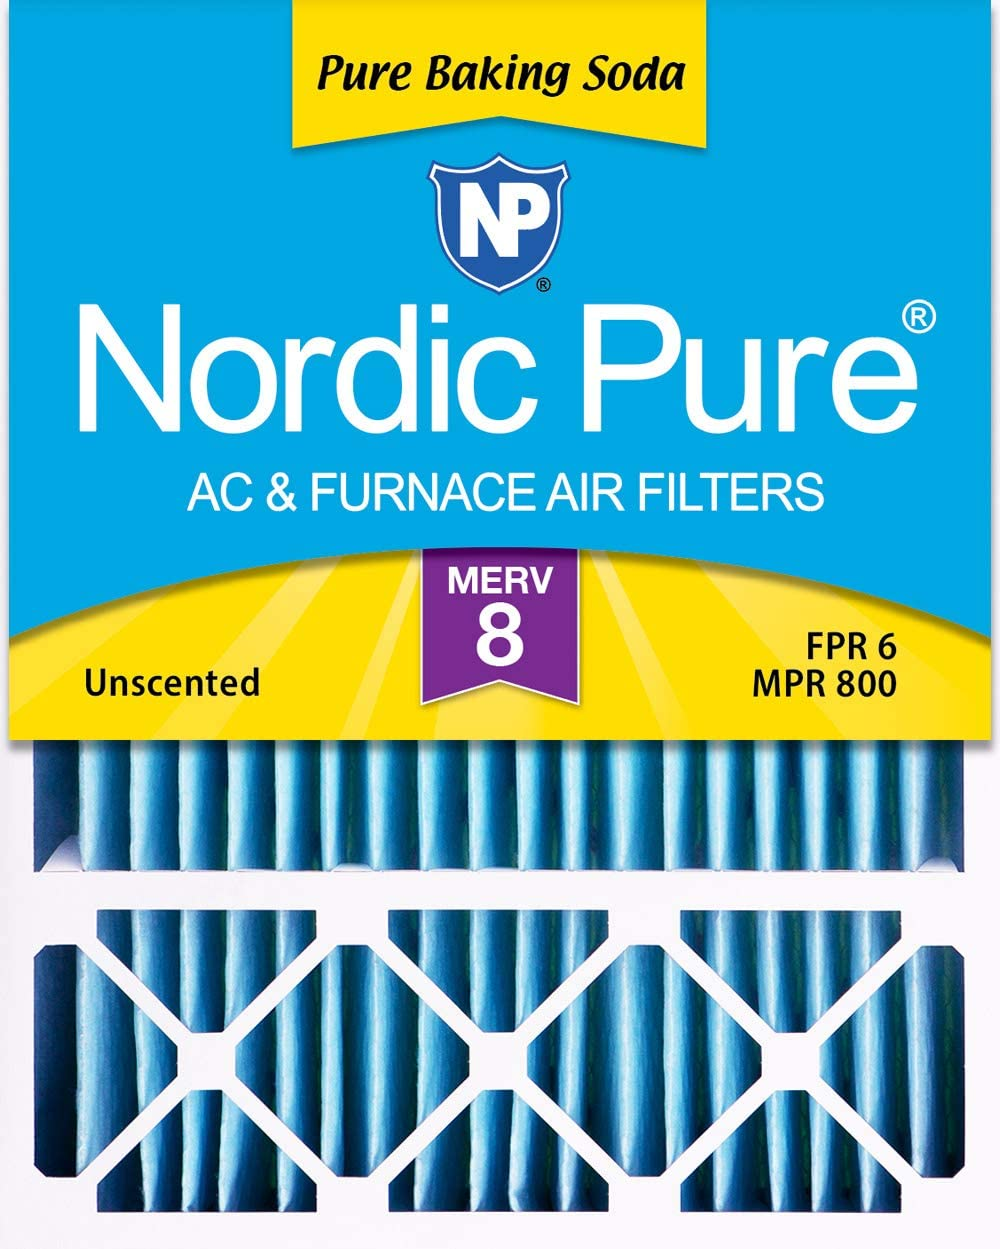 Nordic Pure 20x25x1 MERV 8 Pure Carbon Pleated Odor Reduction AC Furnace Air Filters 3 Pack